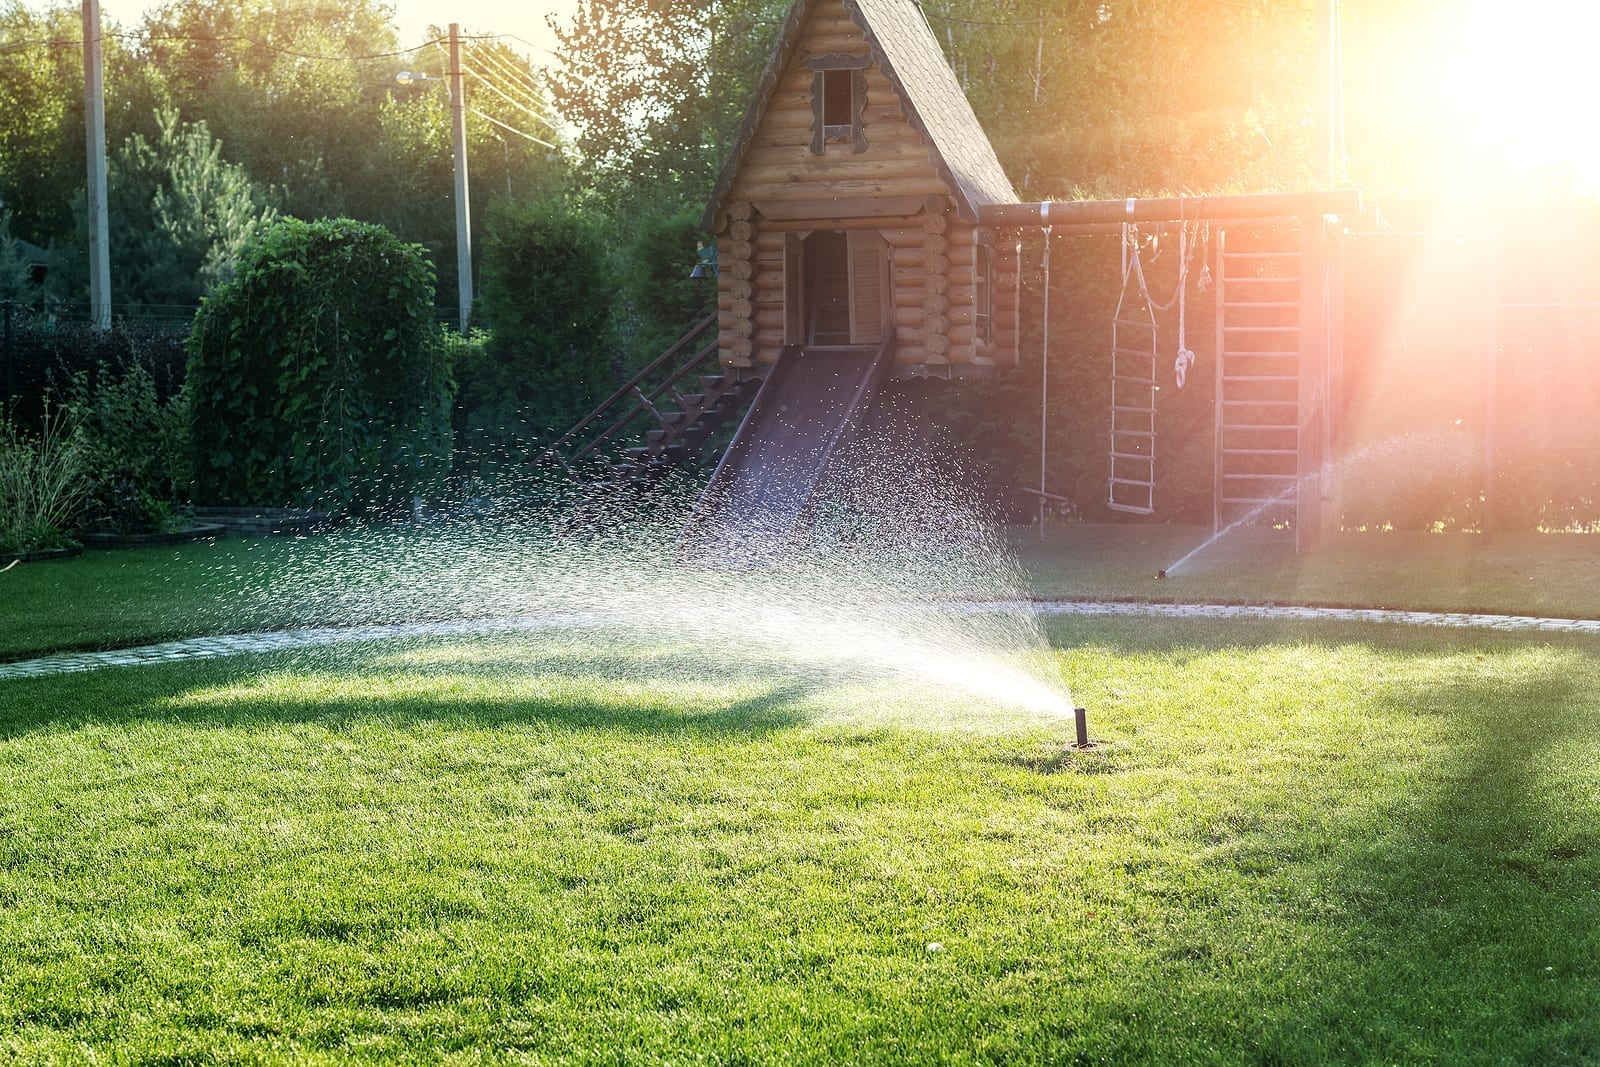 Albuquerque Heat Wave 2020 Garden and Lawn Watering Tips - Part One by R & S Landscaping 505-271-8419 a